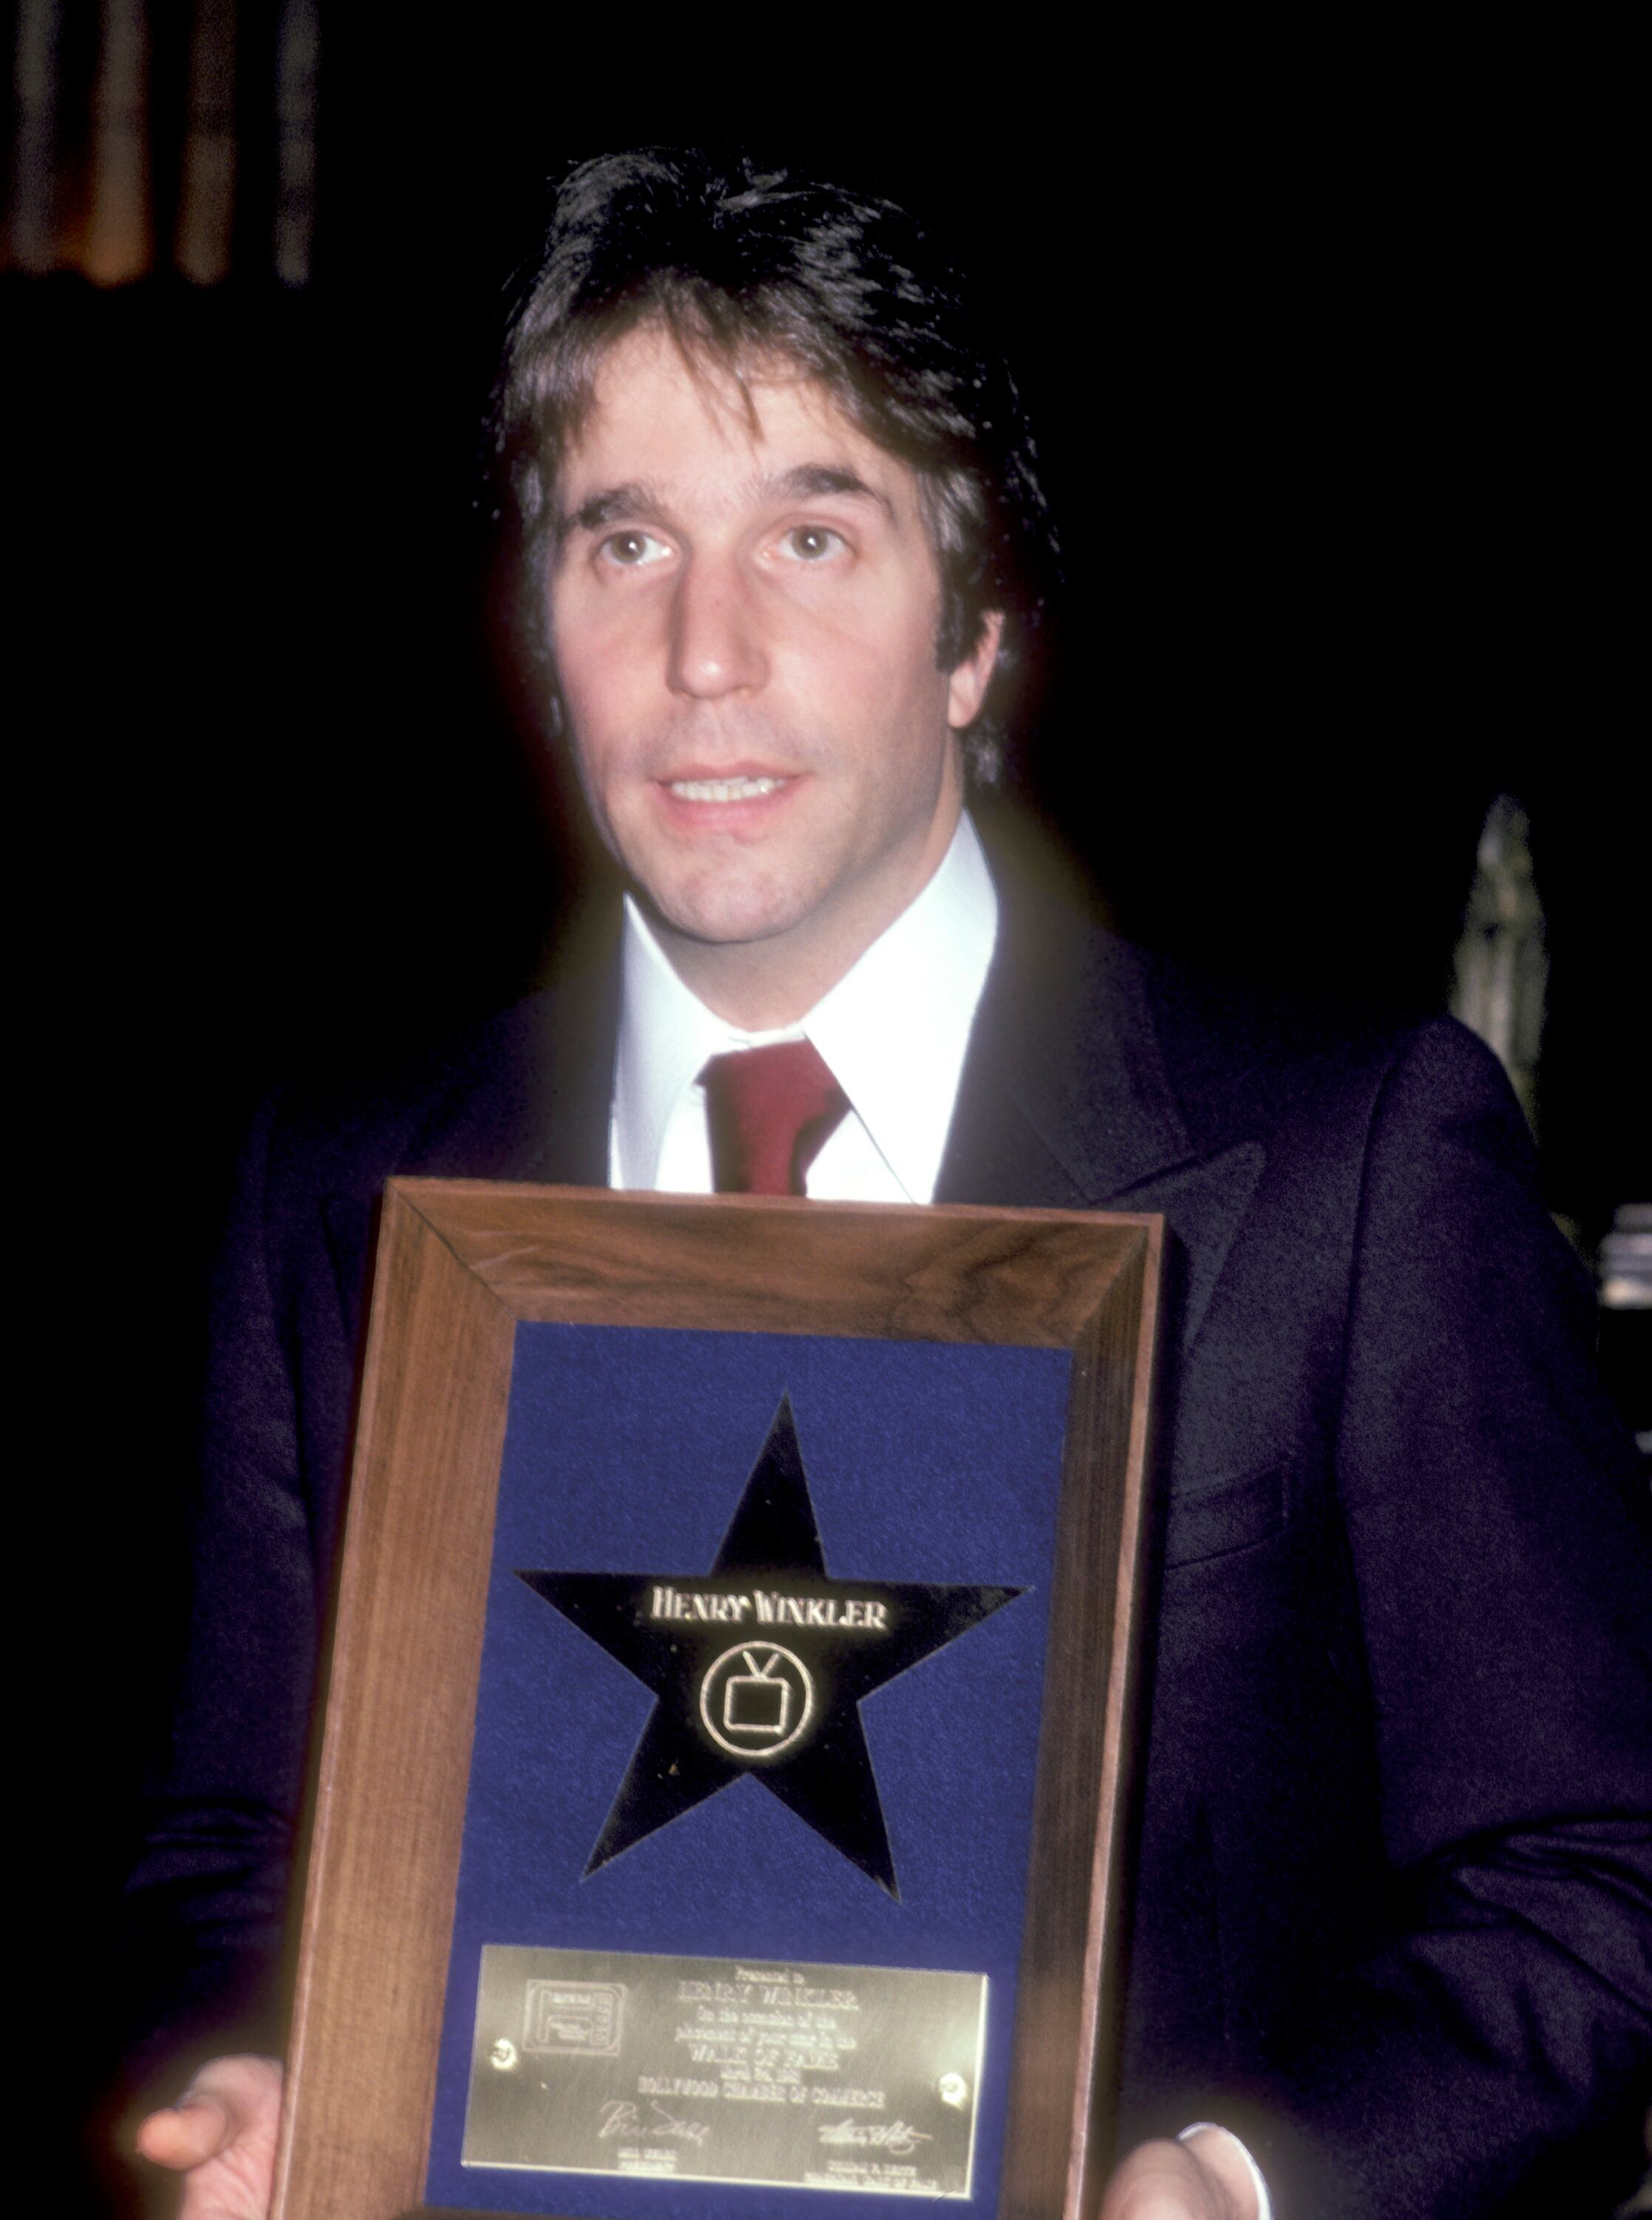 Henry Winkler Receives a Hollywood Walk of Fame Star